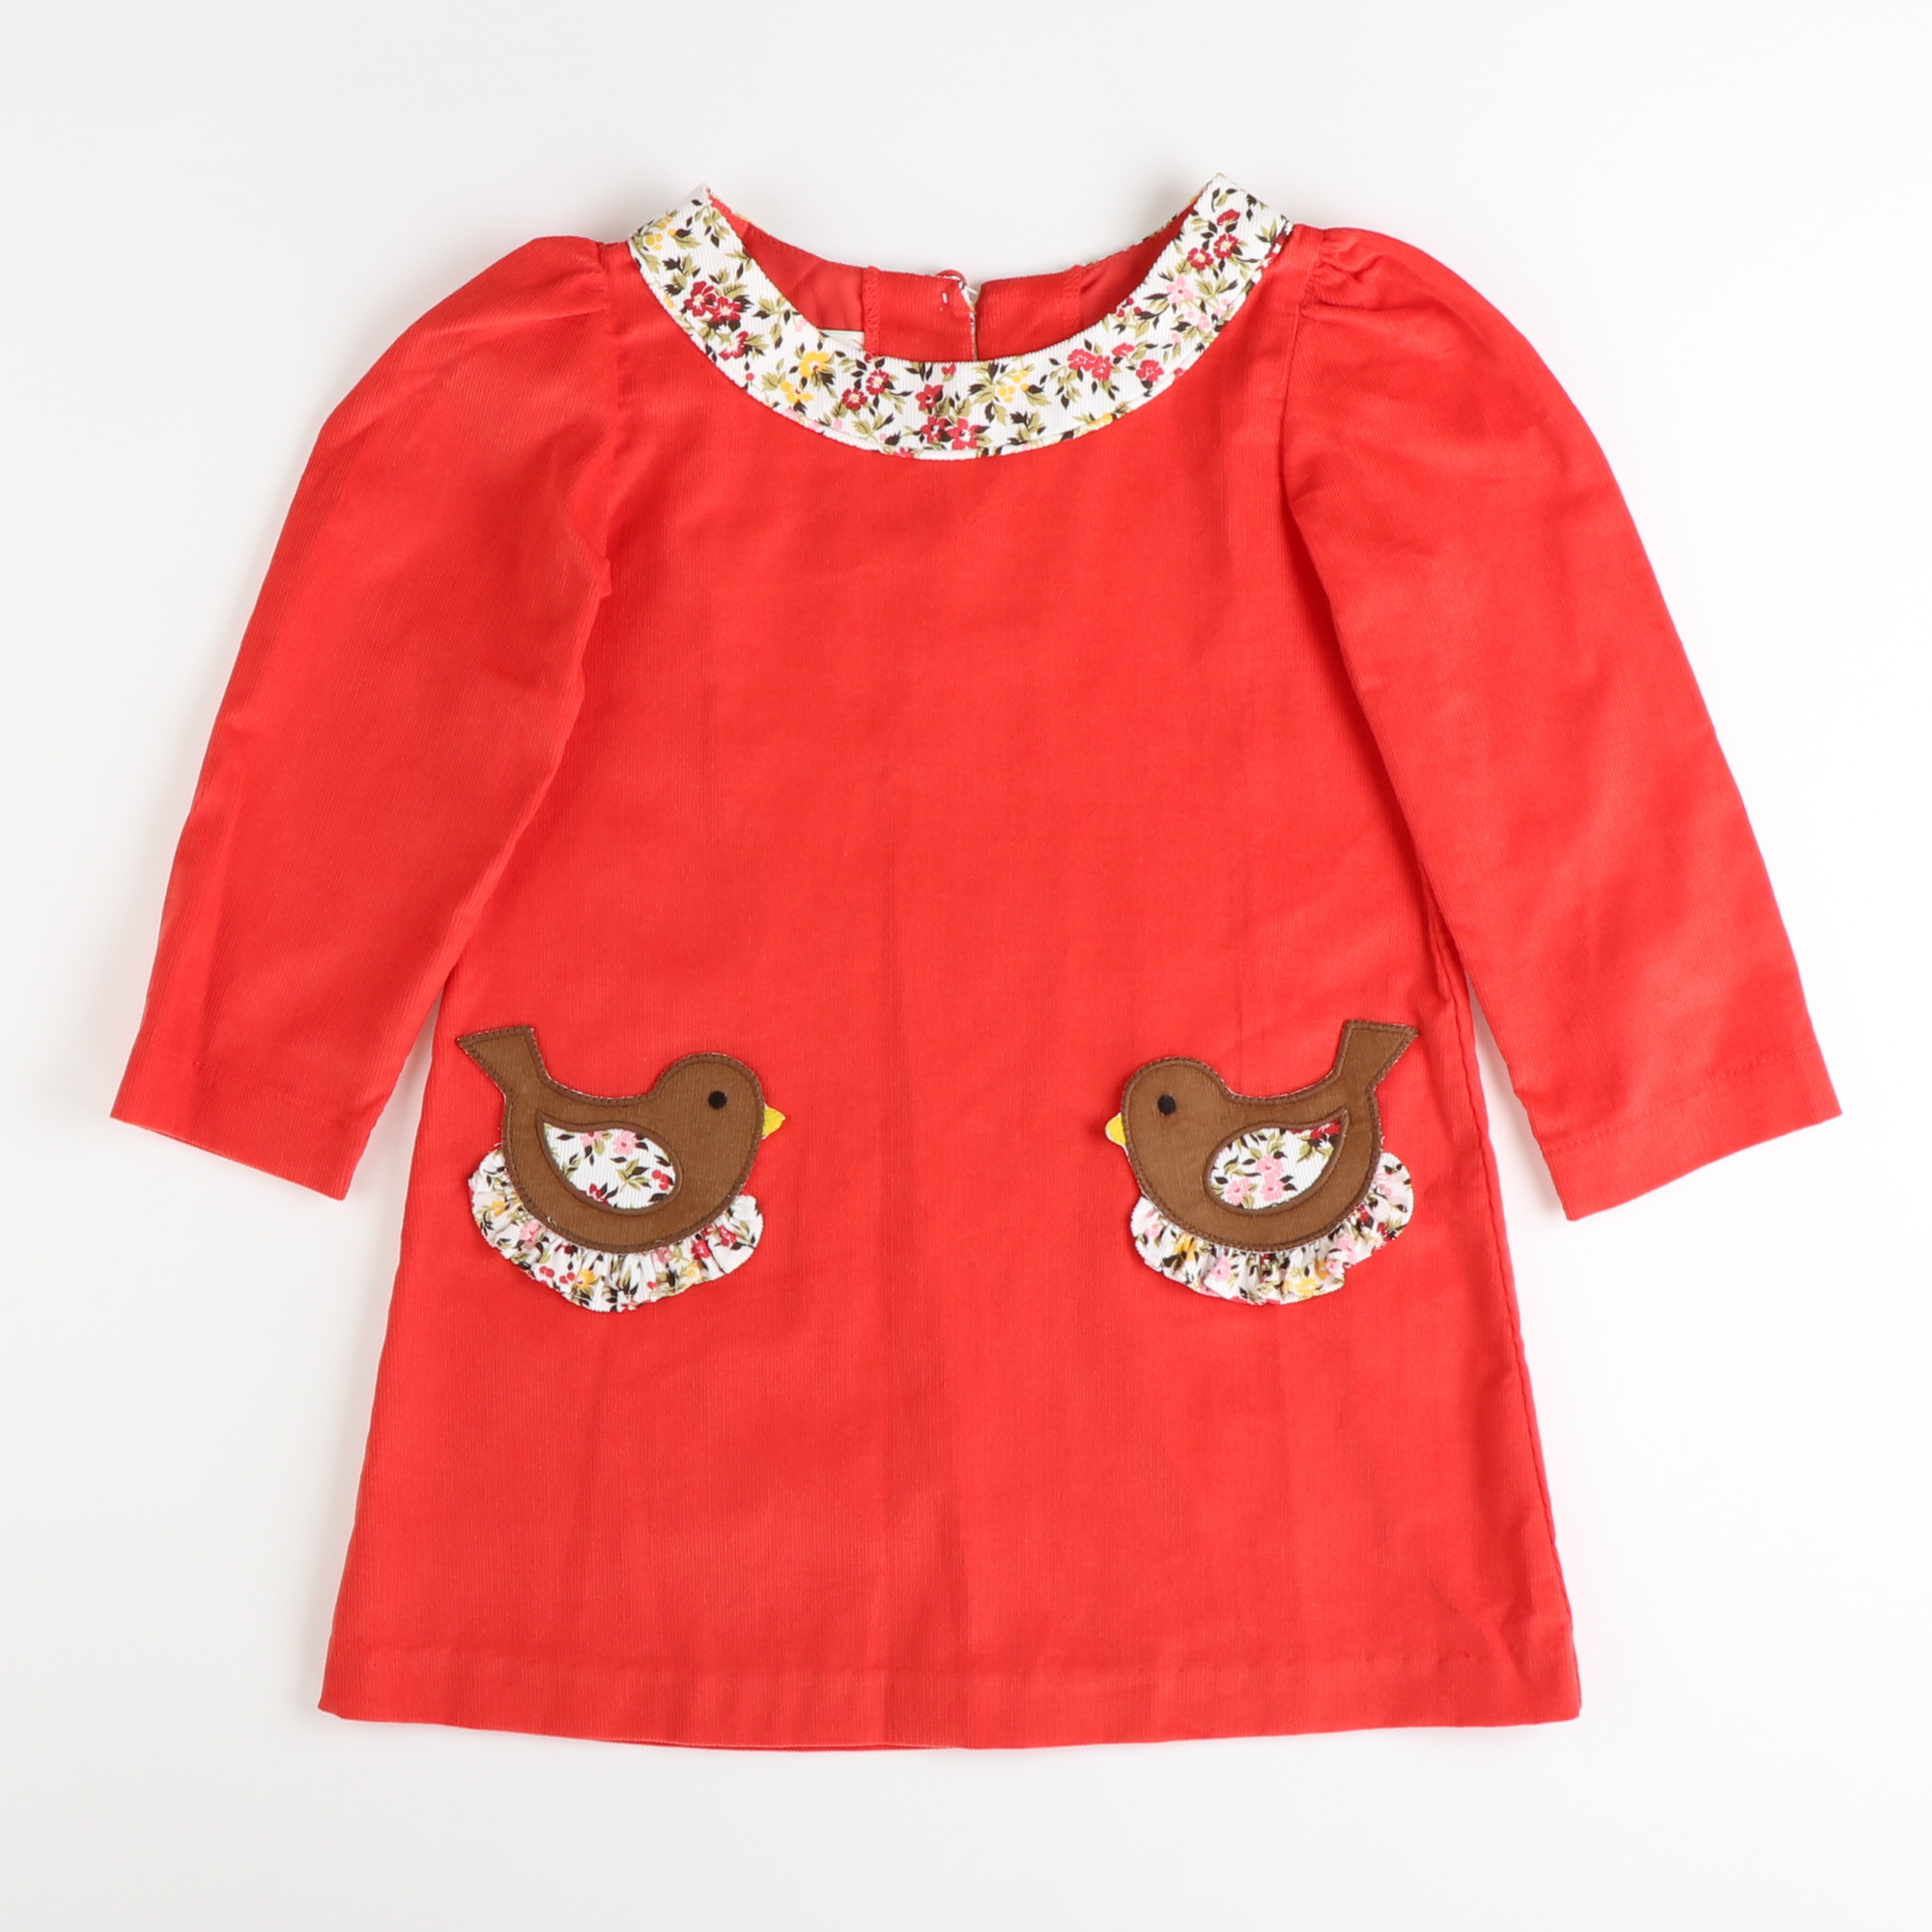 Applique Birds Dress - Tangerine Corduroy